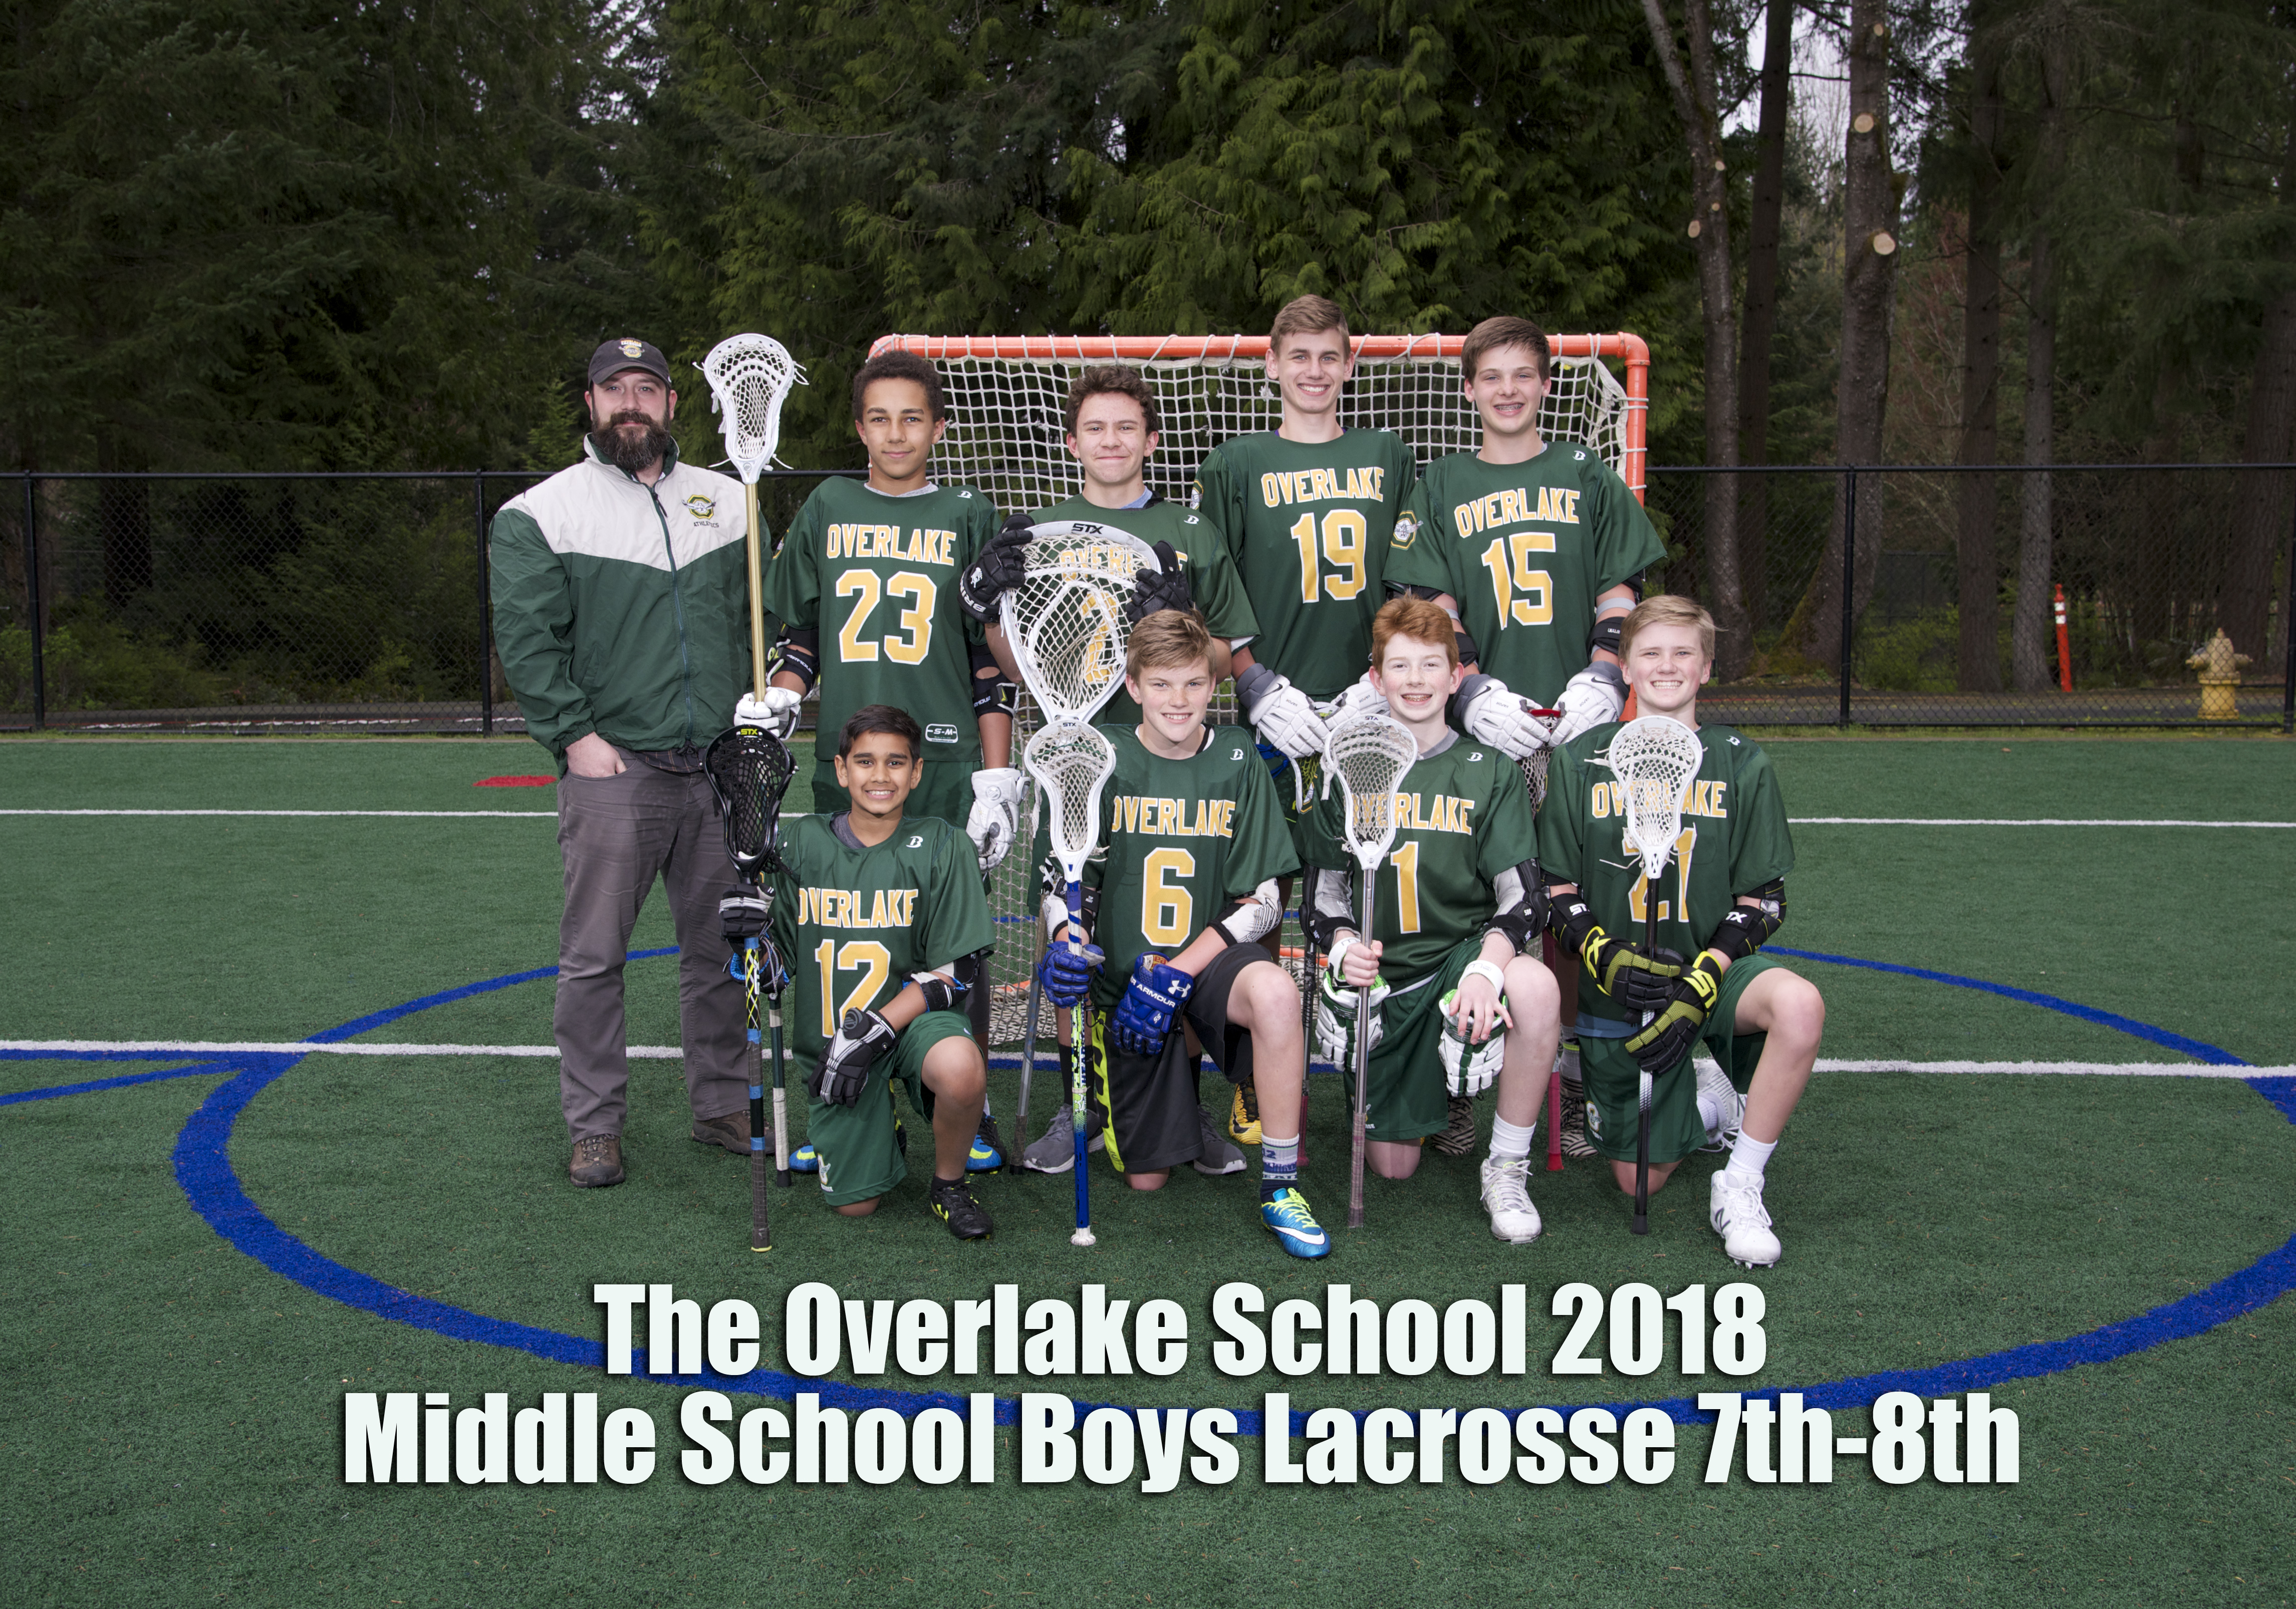 MS Boys Lacrosse